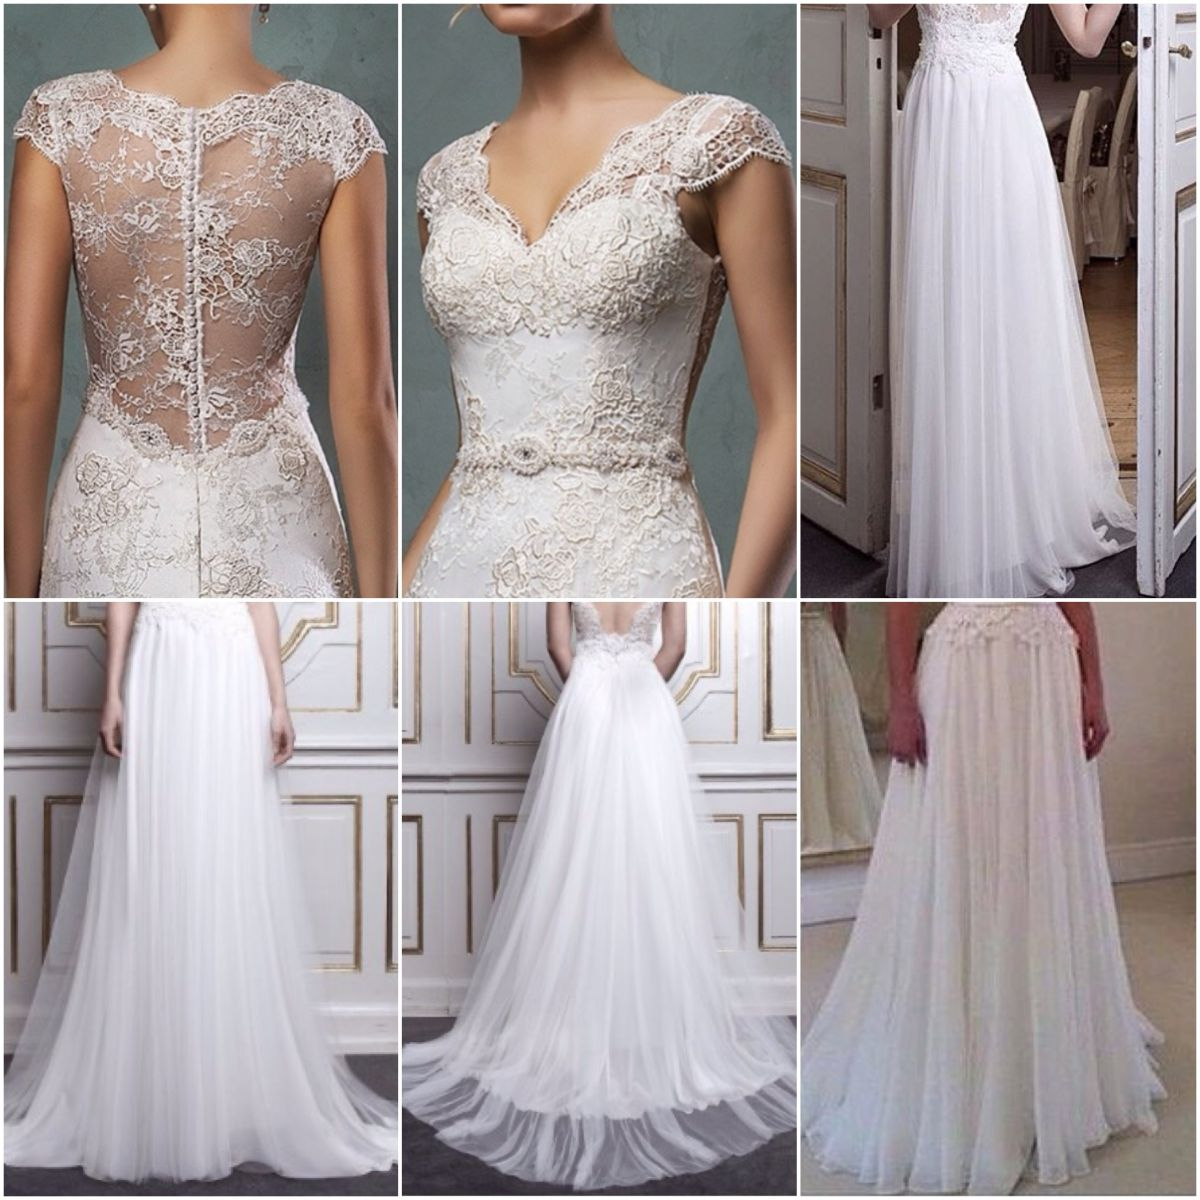 Wedding dress lace top chiffon bottom weddings dresses for Best lace wedding dresses